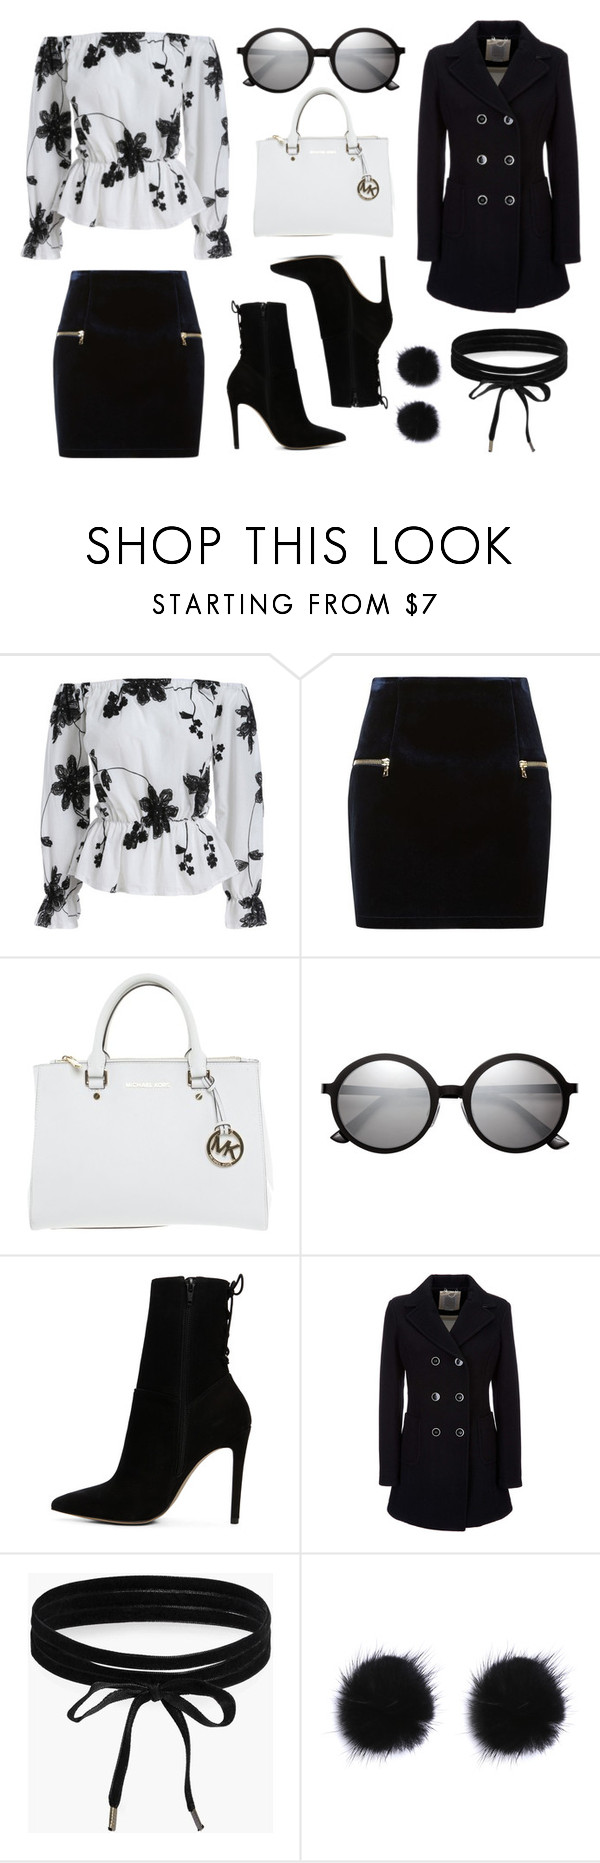 """""""Classy B&W"""" by lucya-knight ❤ liked on Polyvore featuring Sandro, Michael Kors, H&M, ALDO, Geox and Boohoo"""